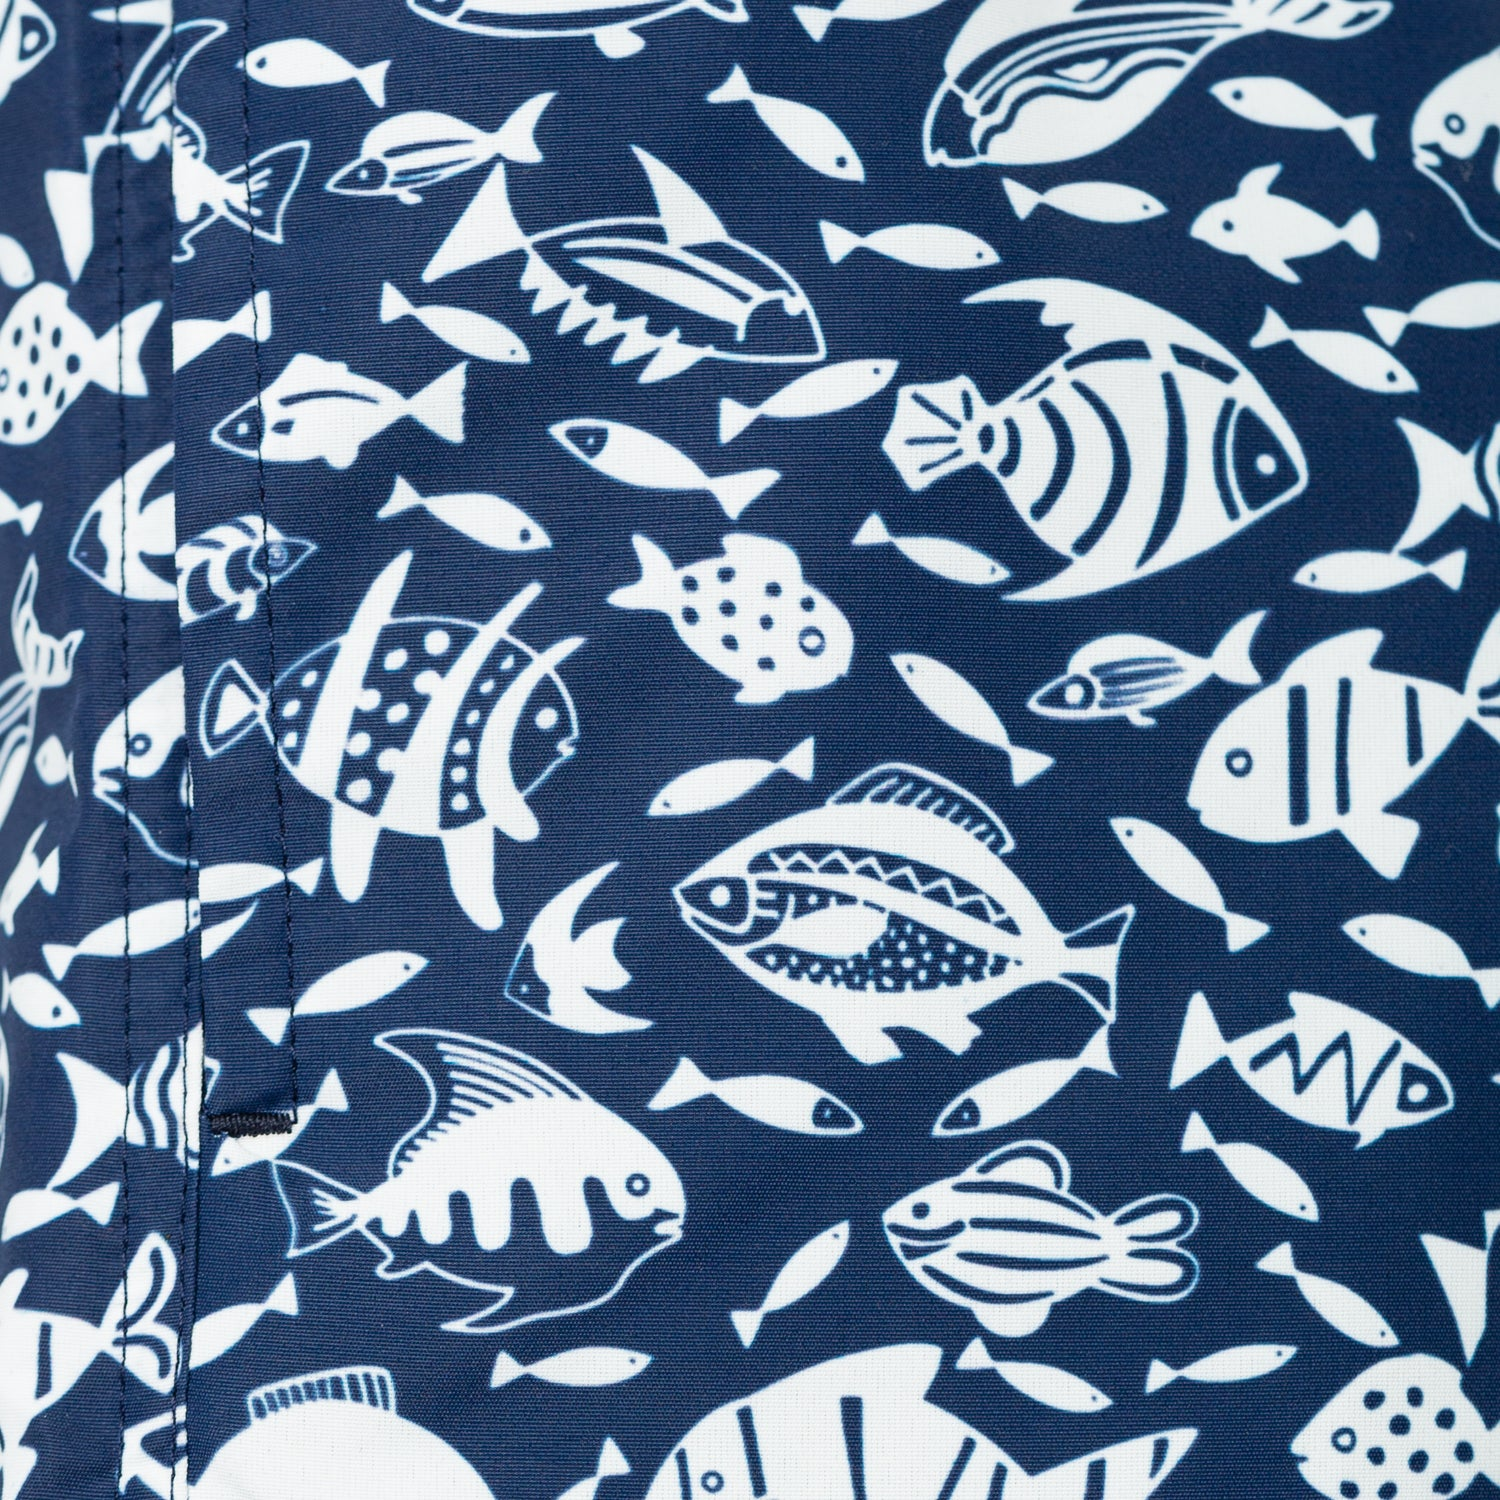 Swimtrunk - Fish print